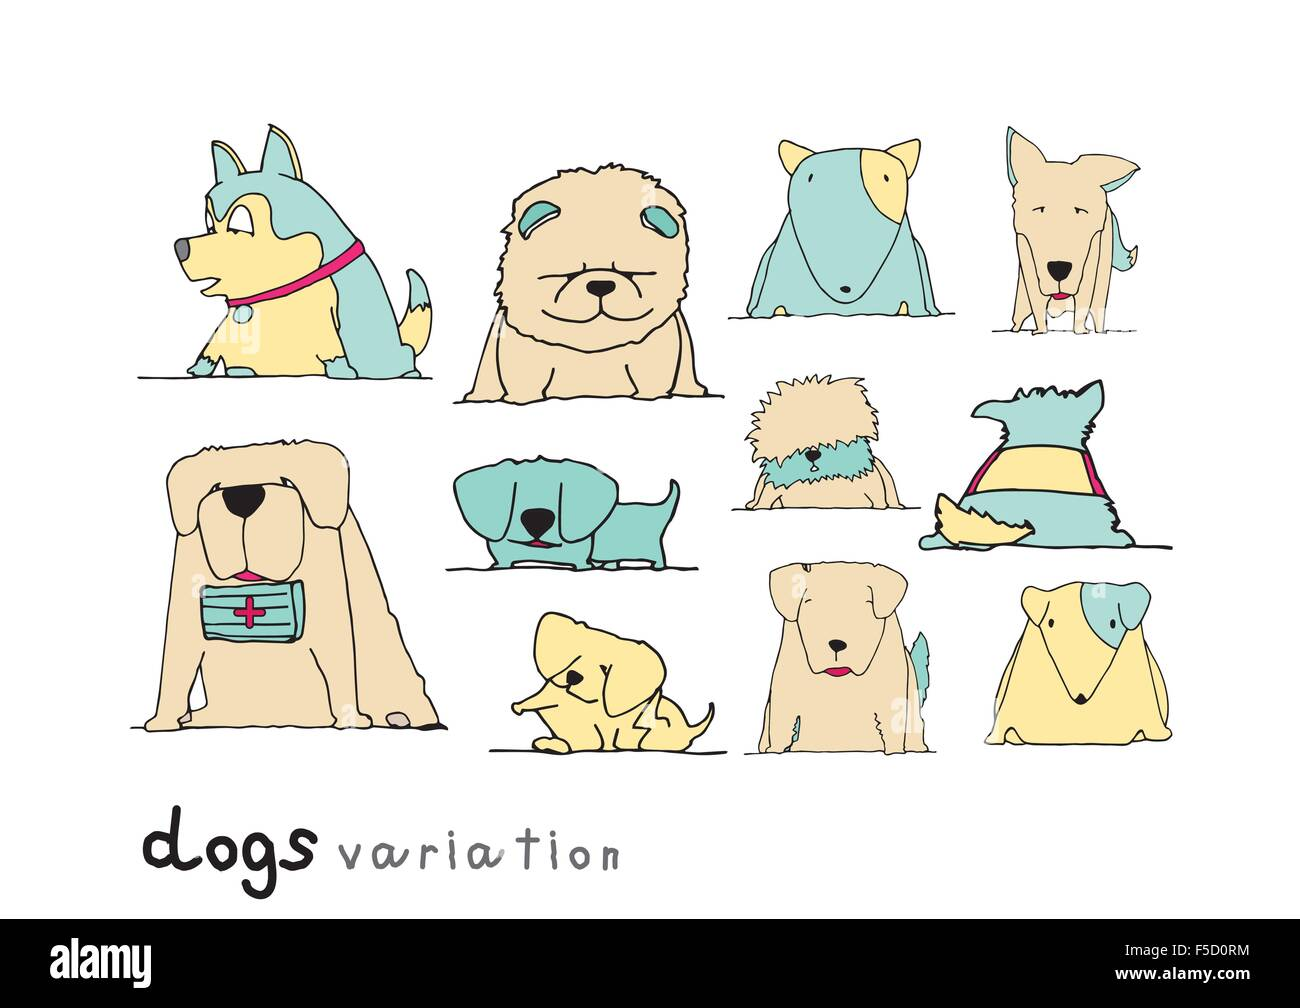 Dogs variation doodle pastel color on white background - Stock Image